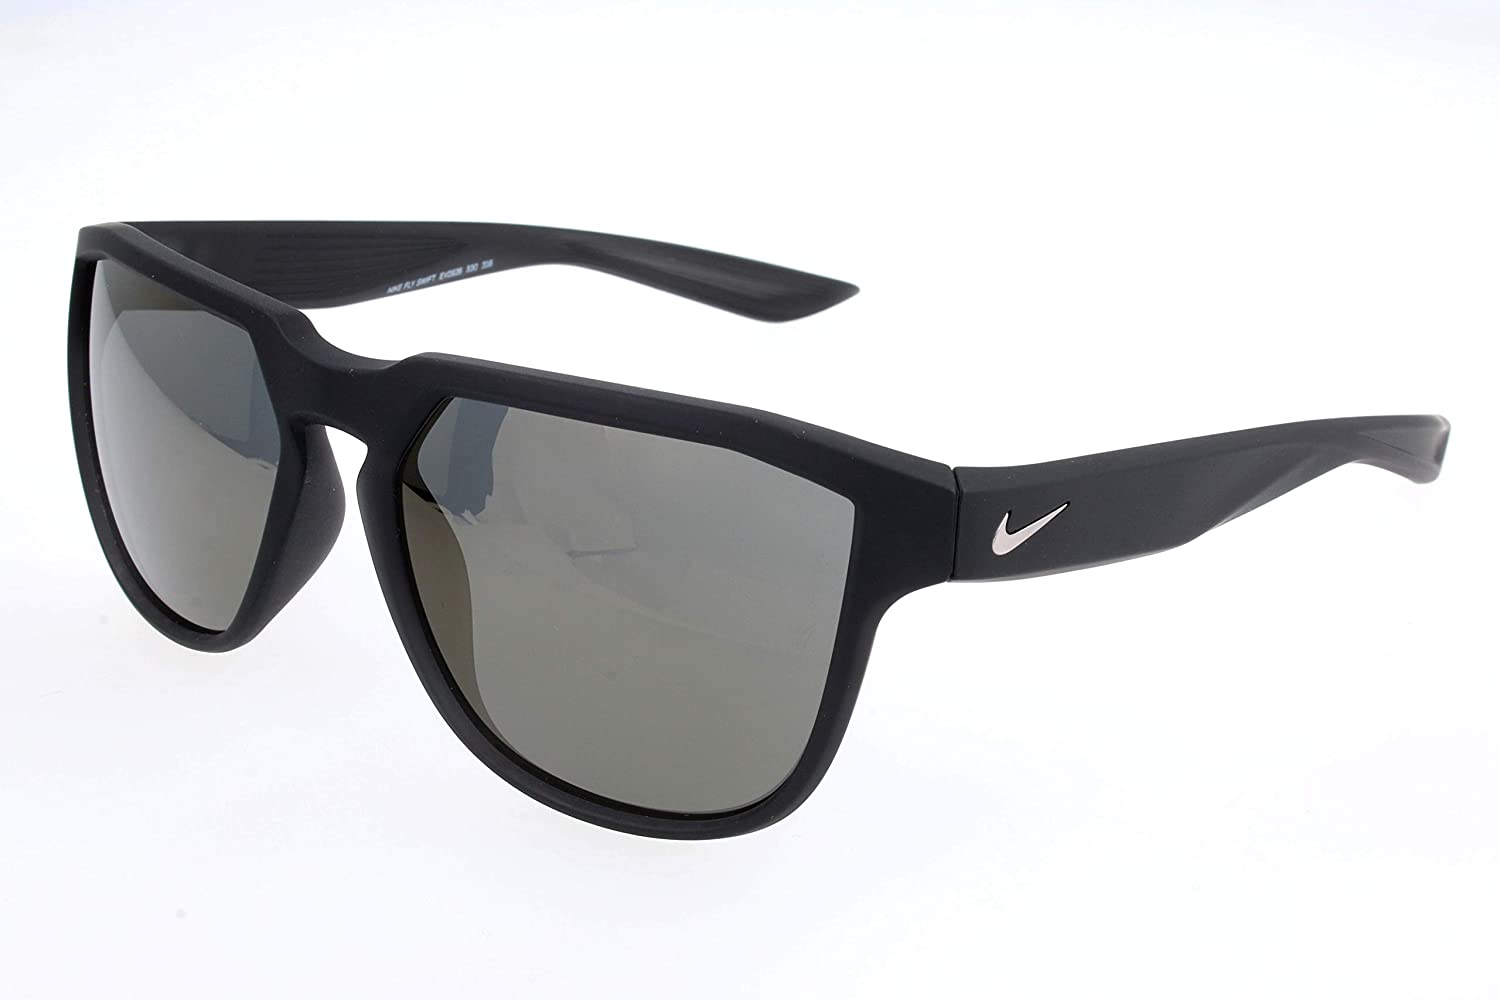 Amazon.com: Nike ev0926 – 330 volar Swift – Gafas de sol ...